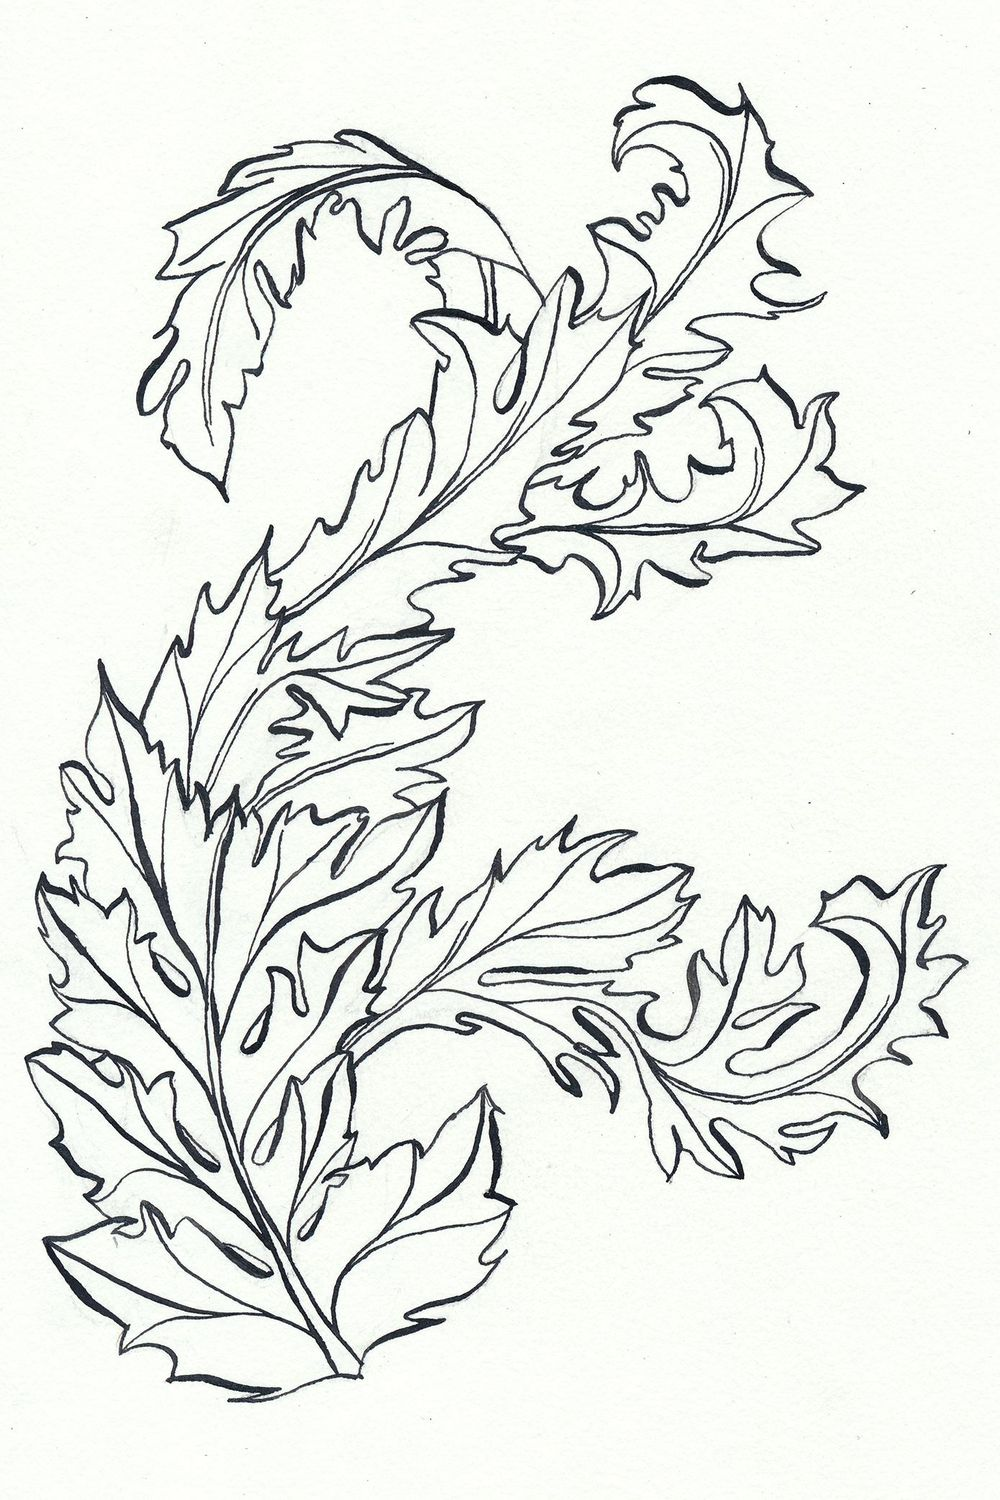 Acanthus scroll - image 1 - student project